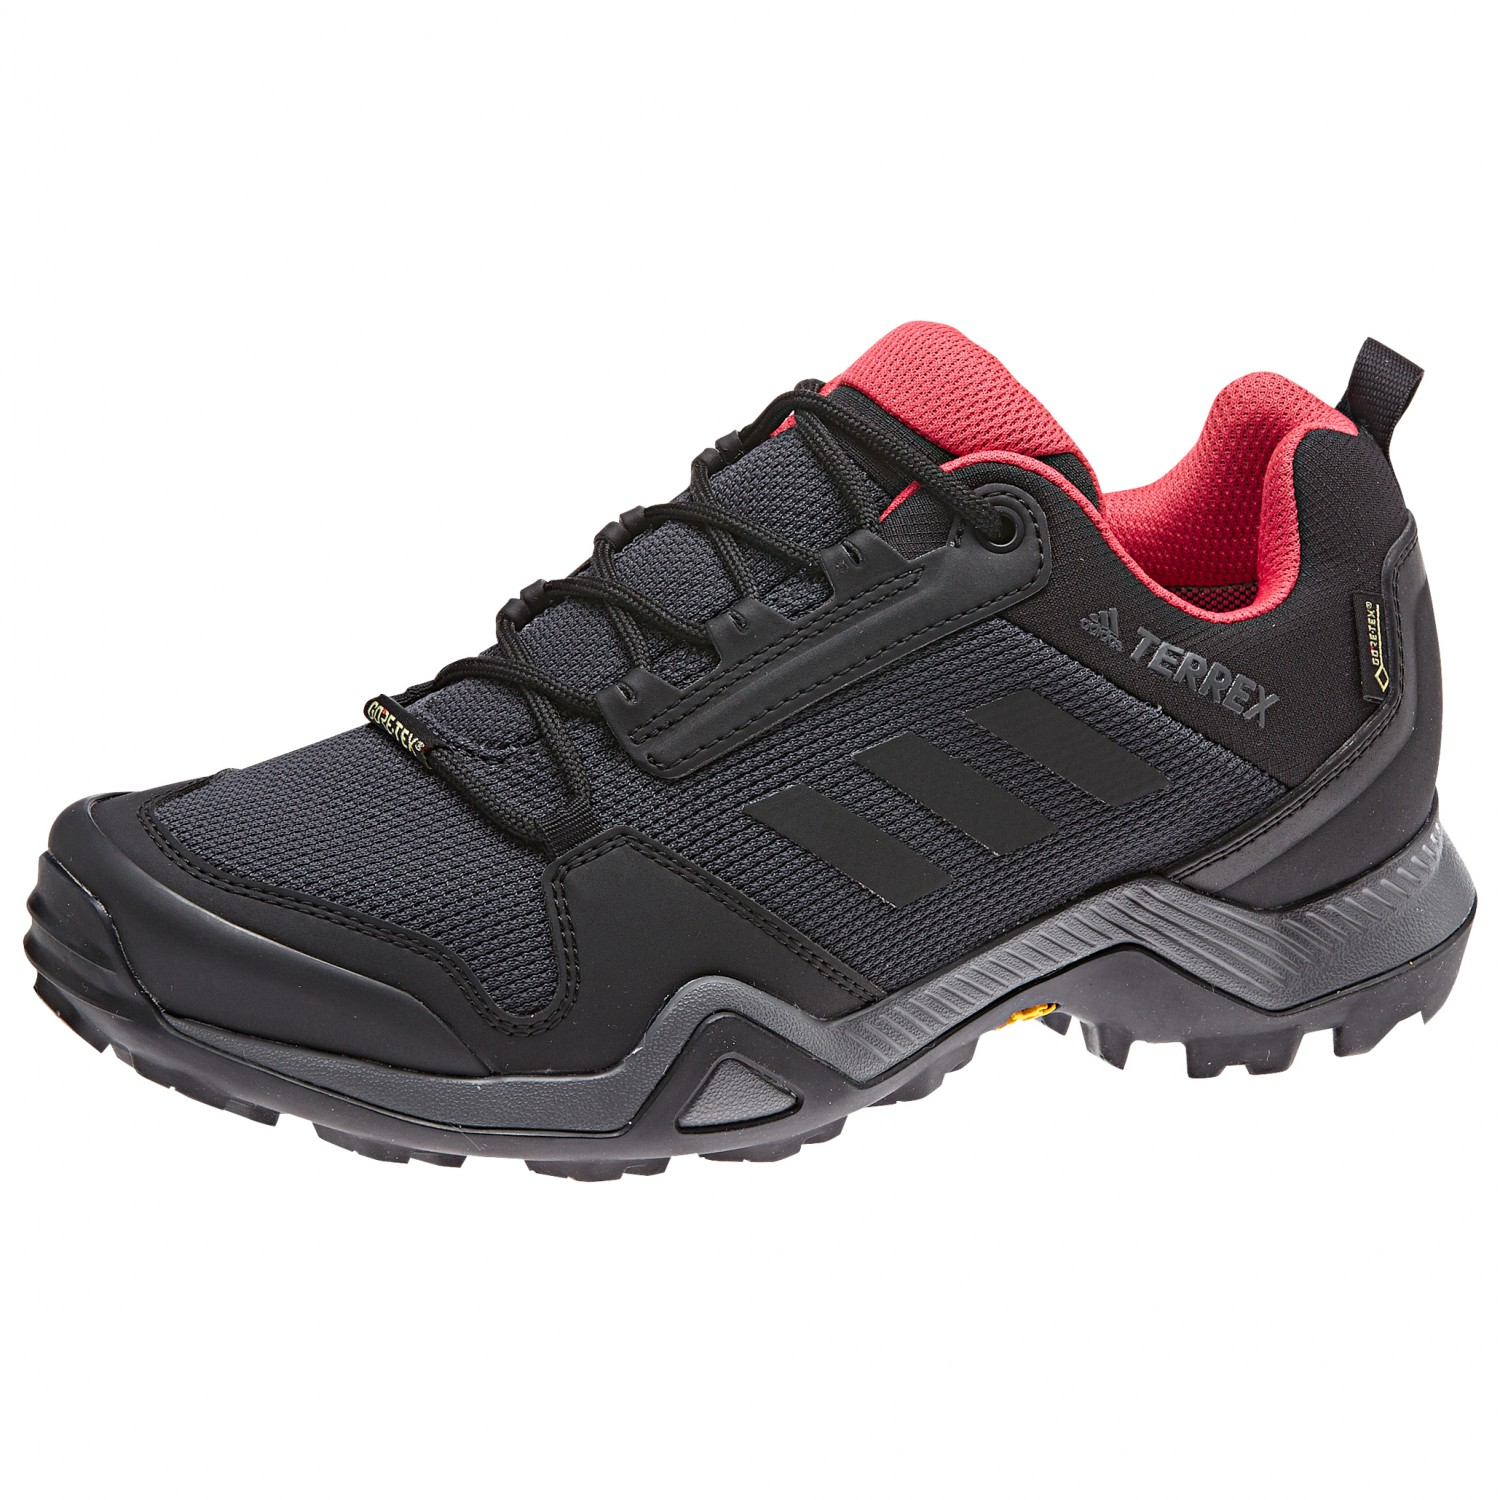 923d6a51bad40 Adidas Terrex AX3 GTX - Multisport Shoes Women's | Free UK Delivery ...